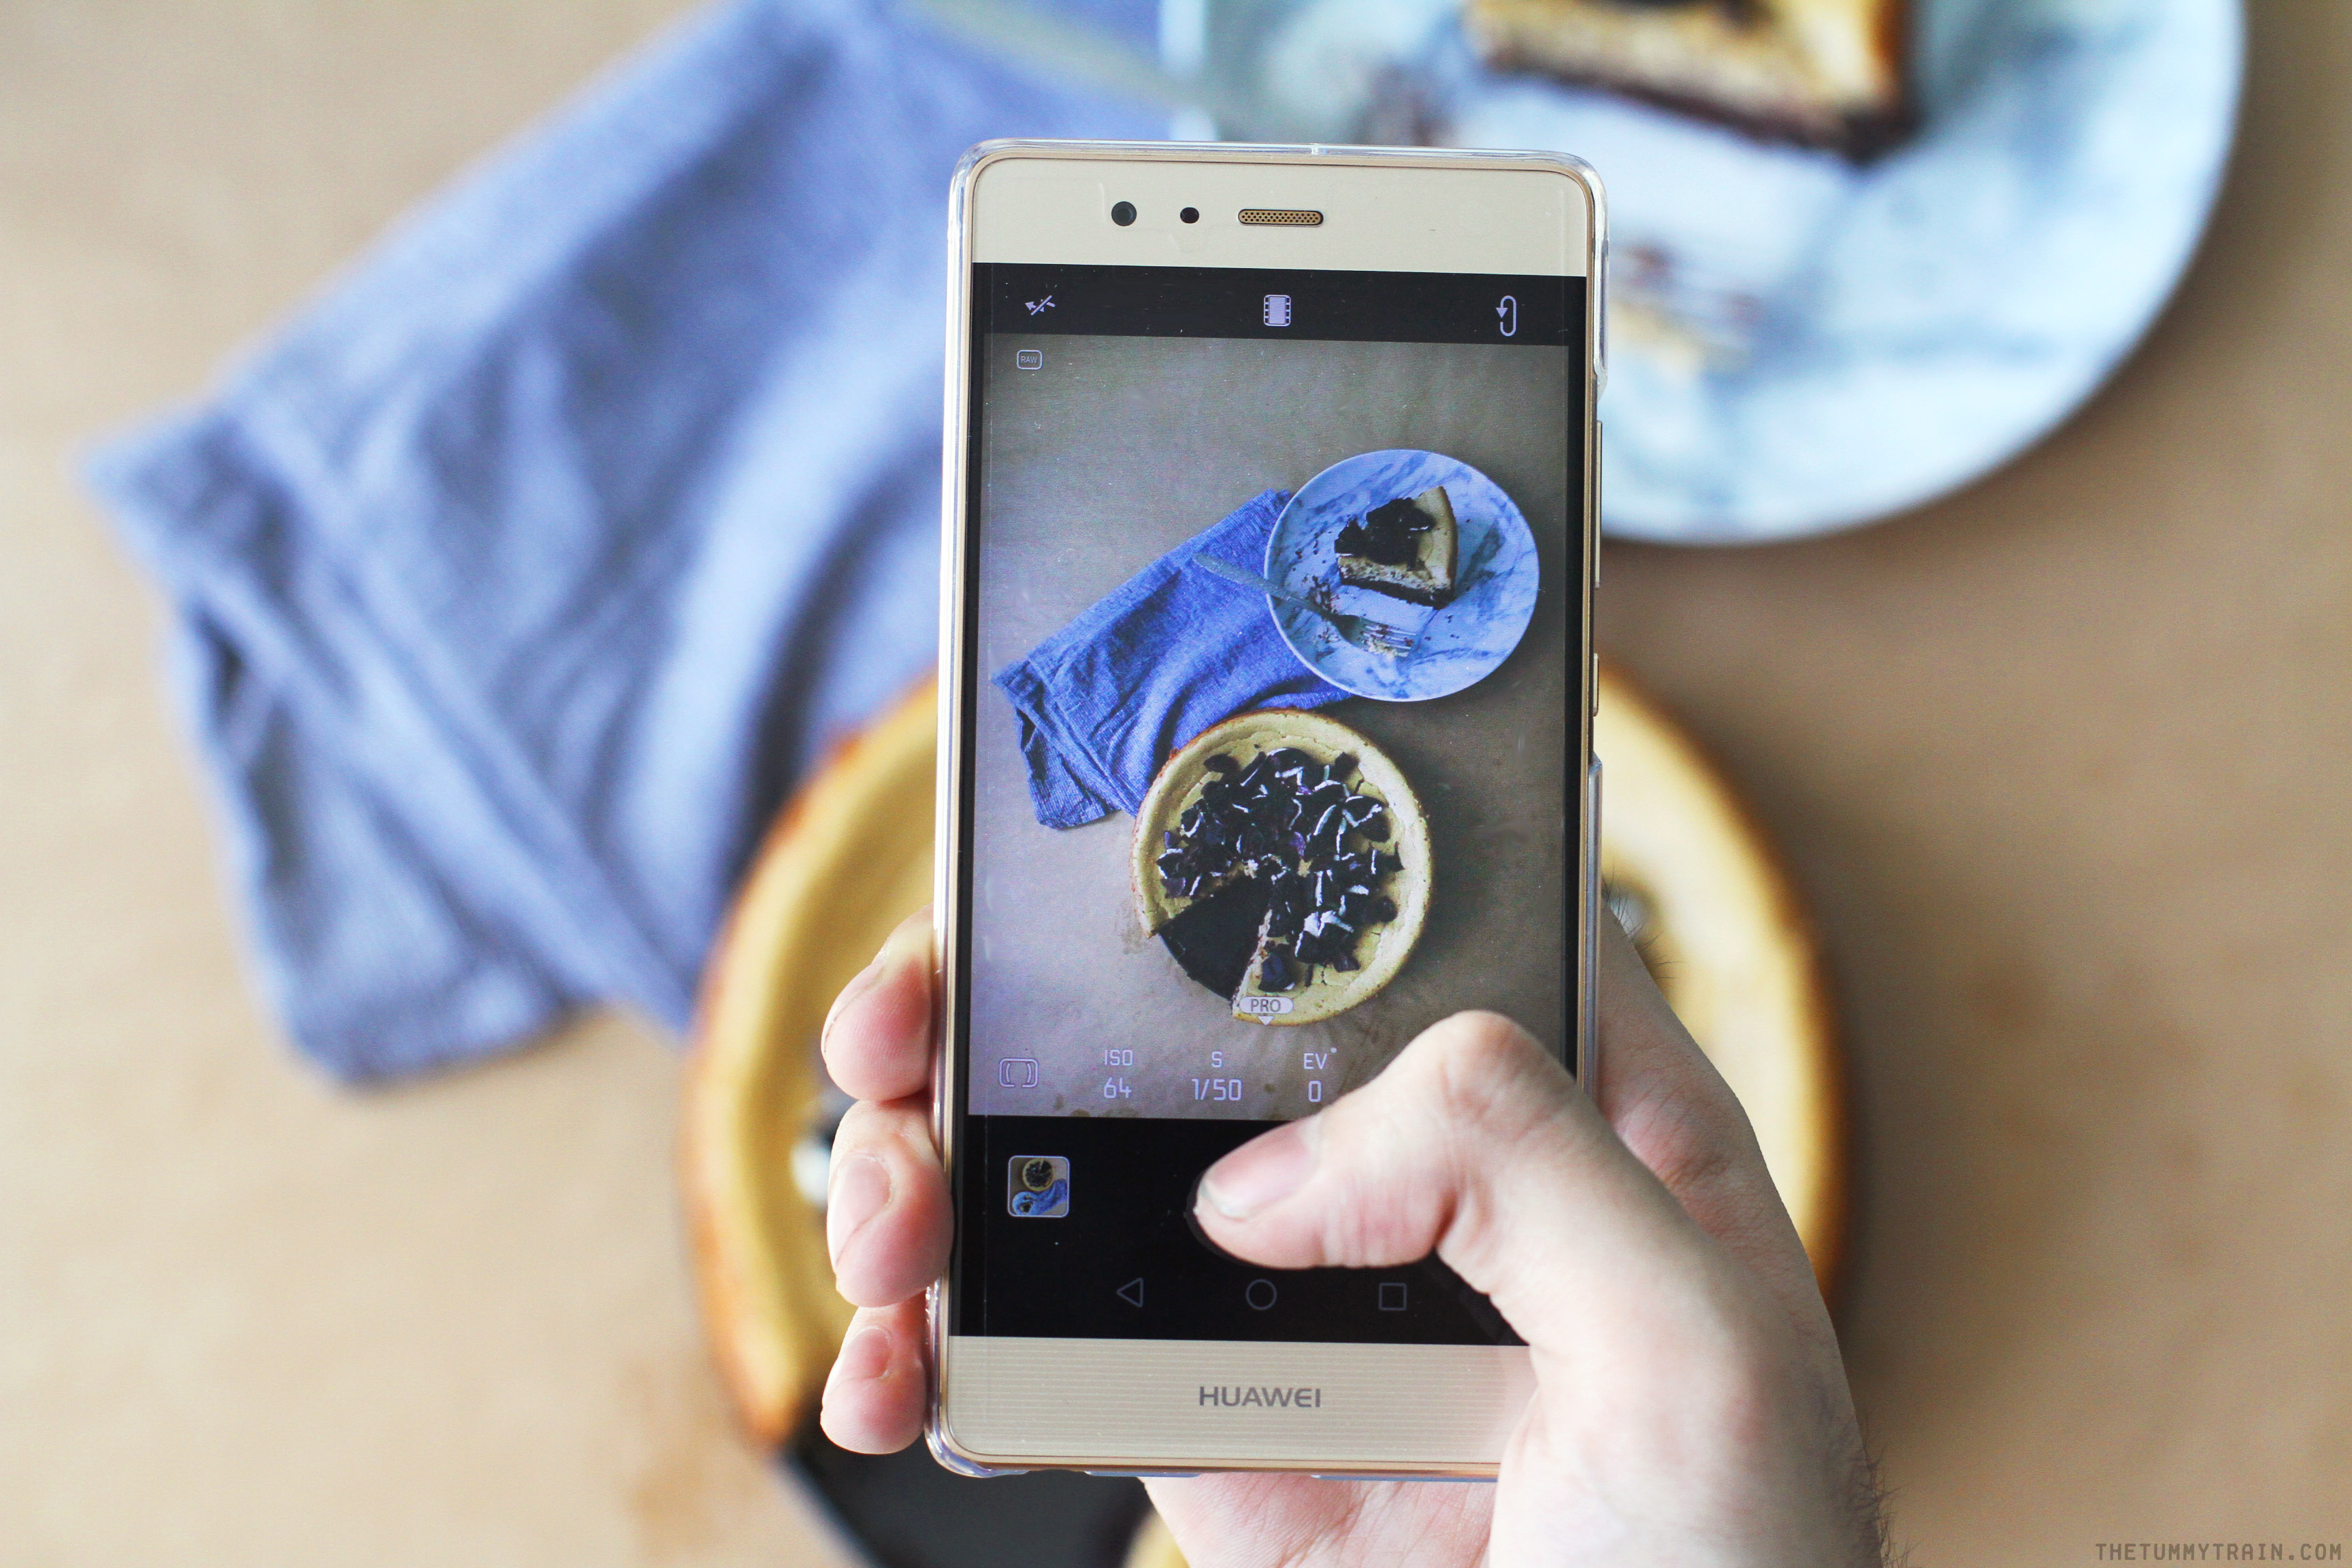 Huawei P9 - Is the Huawei P9's dual-lens camera worthy of the hype?